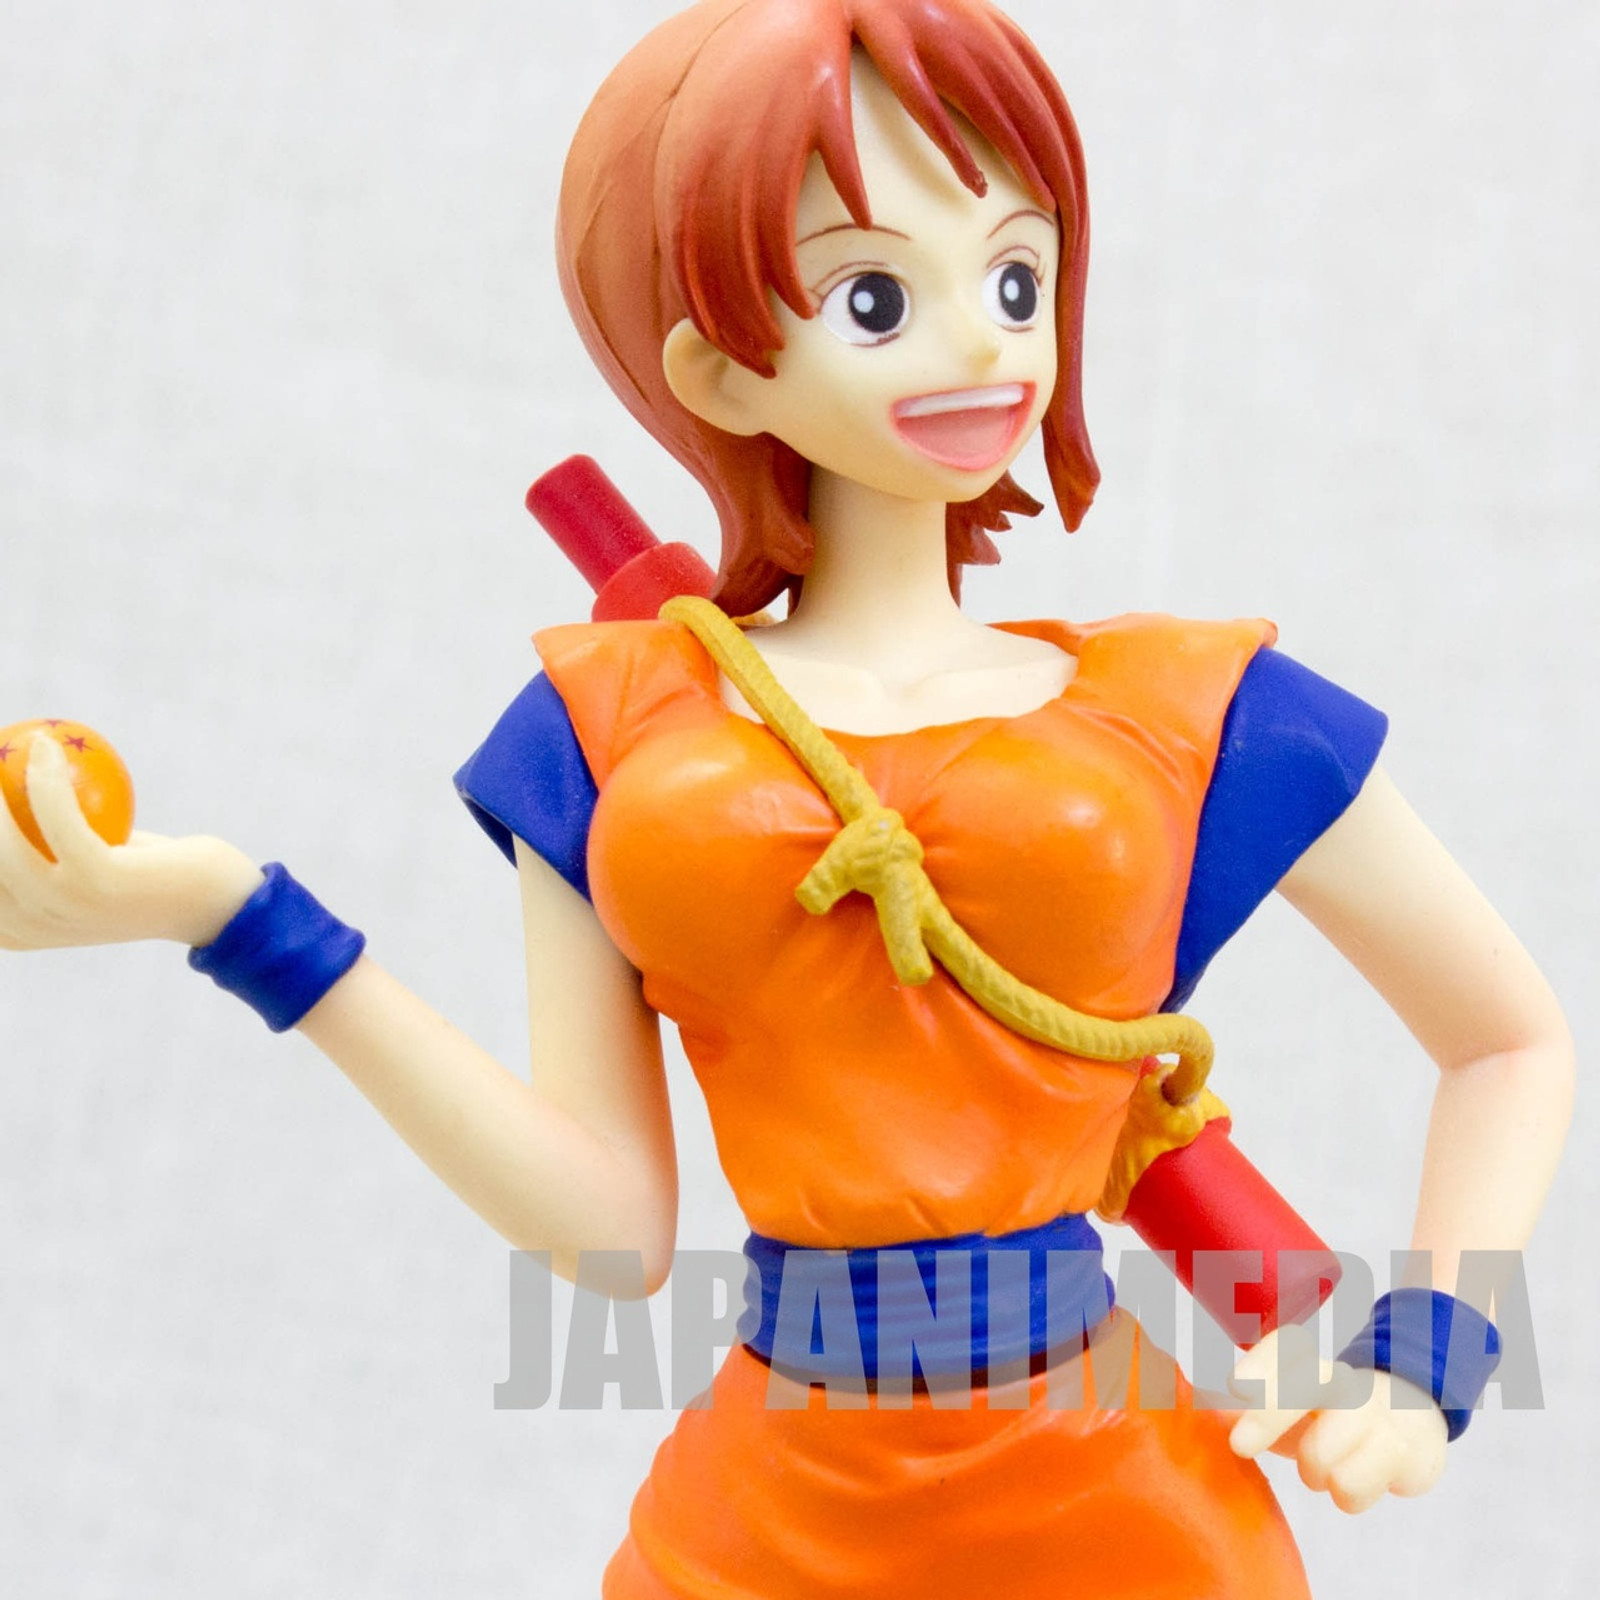 Dragon Ball Z x ONE PIECE Nami 40th Anniversary DX Figure Banpresto JAPAN ANIME 2